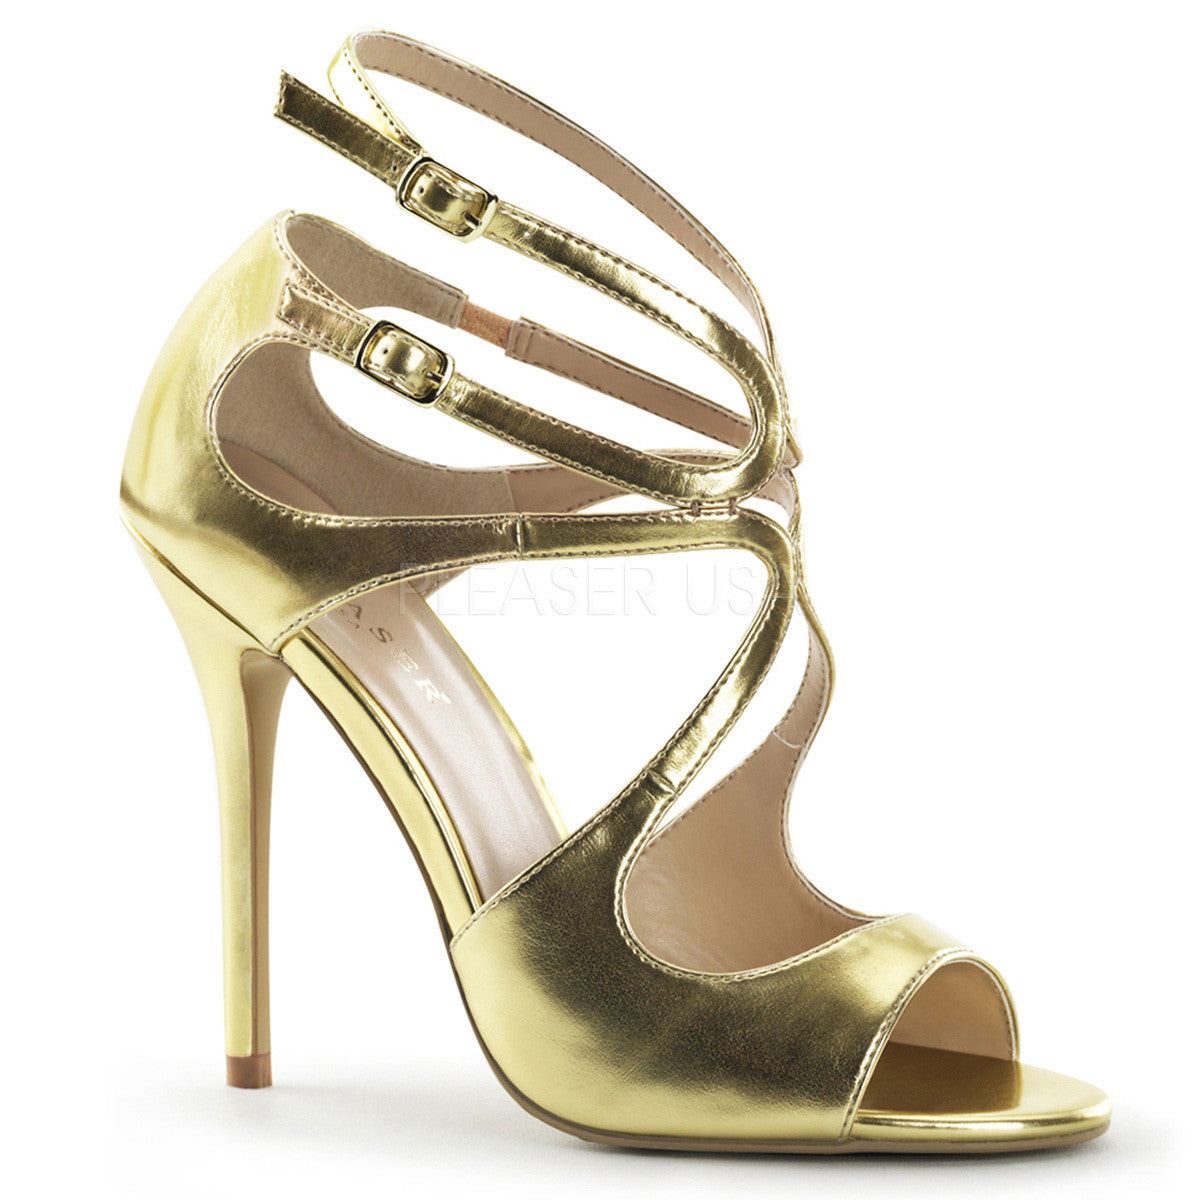 PLEASER AMUSE-15 Gold Met Pu Strap Sandals - Shoecup.com - 1